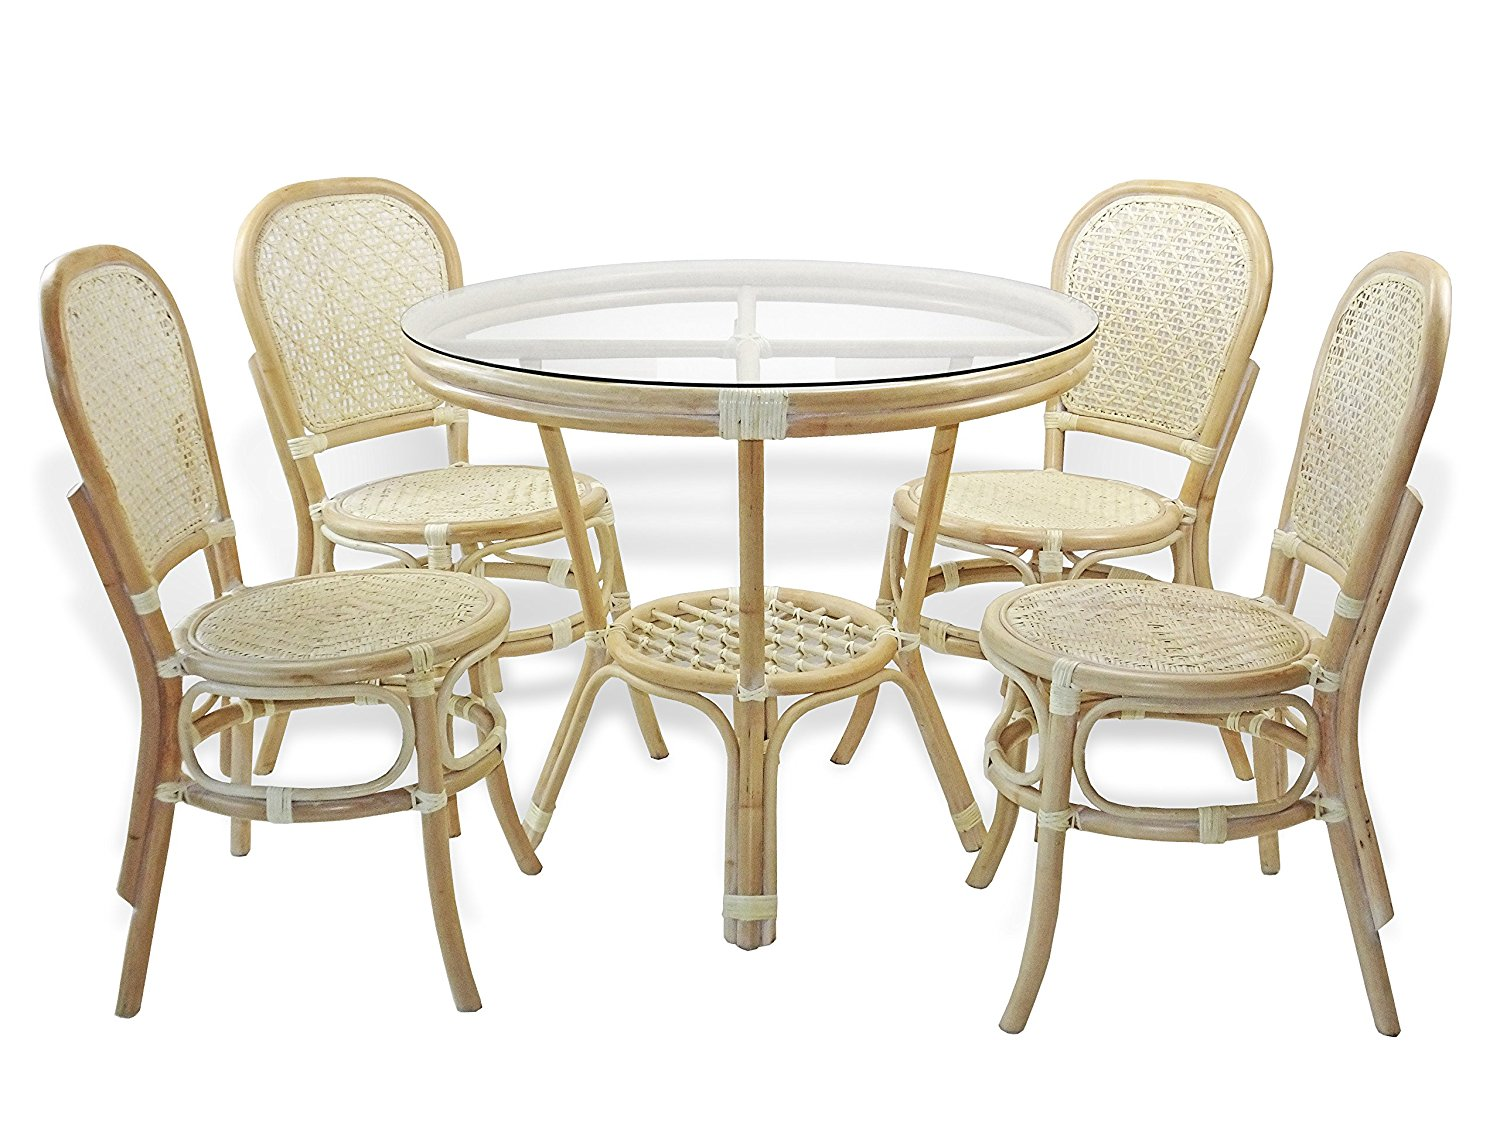 Cheap Glass Round Dining Table And Chairs Find Glass Round Dining - White wicker round dining table